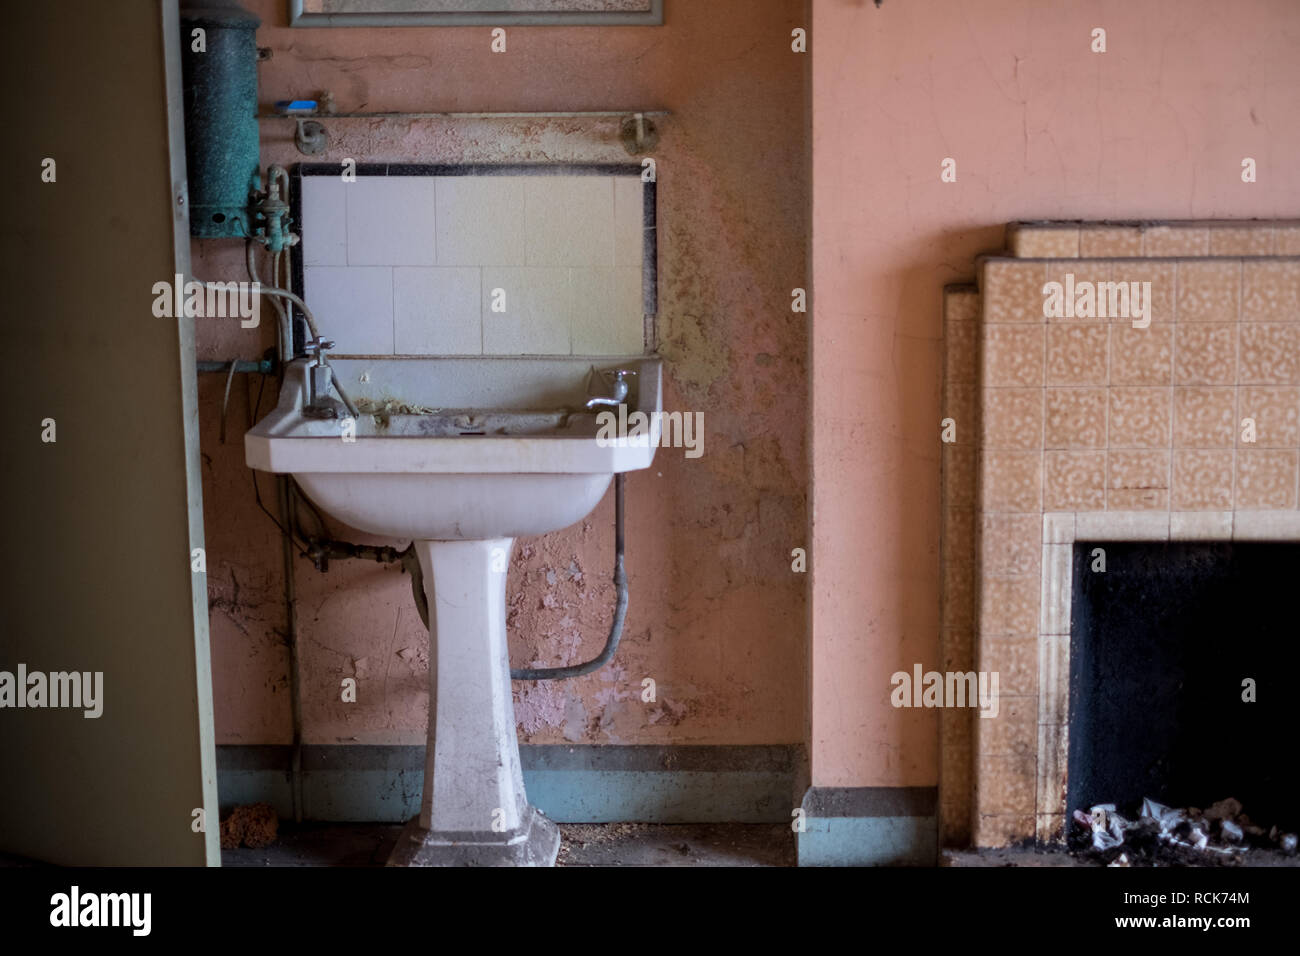 Close up of hand basin and original oxidised water heater in derelict house built in 1930s deco style, Rayners Lane, Harrow, Middlesex, UK - Stock Image